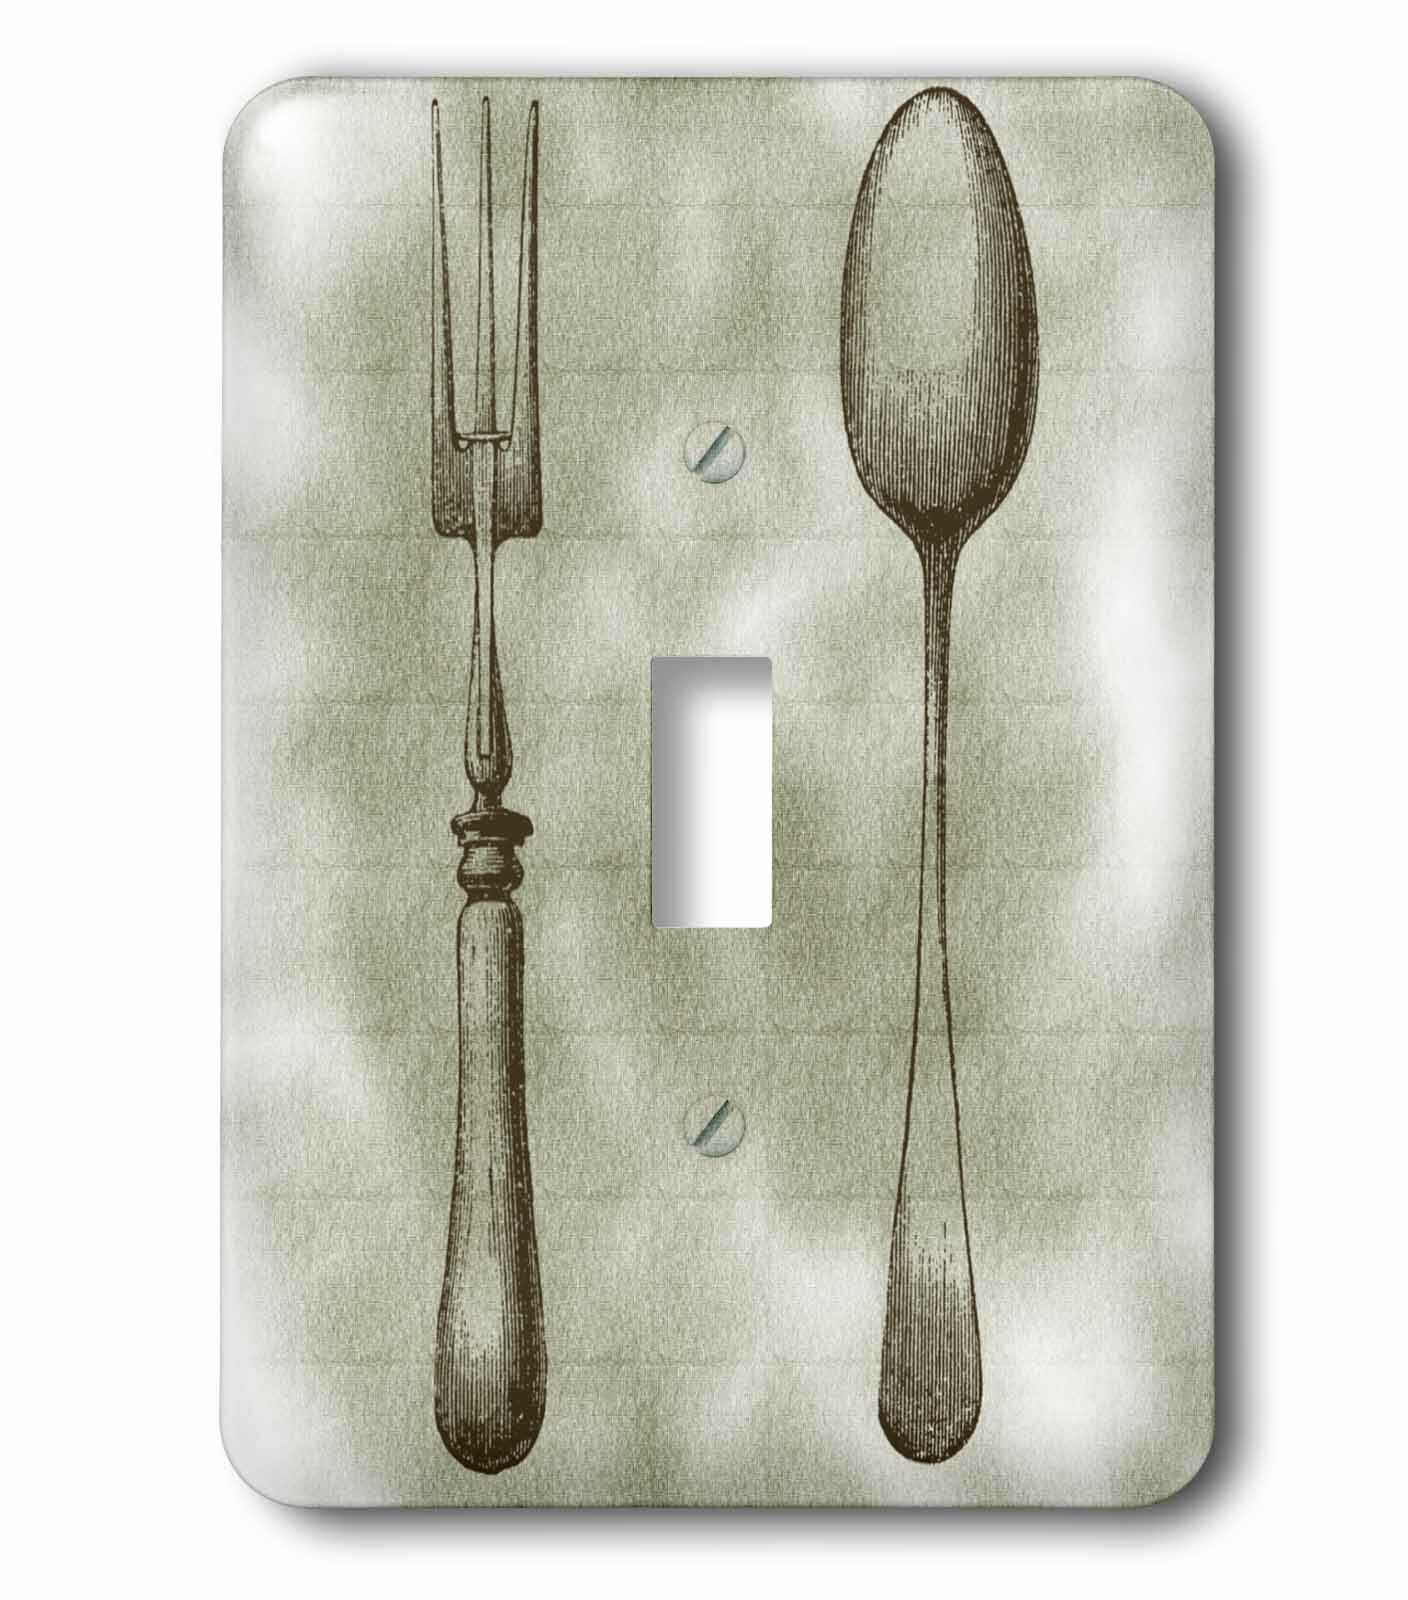 3drose Fork And Spoon Kitchen Décor And Art 1 Gang Toggle Light Switch Wall Plate Wayfair